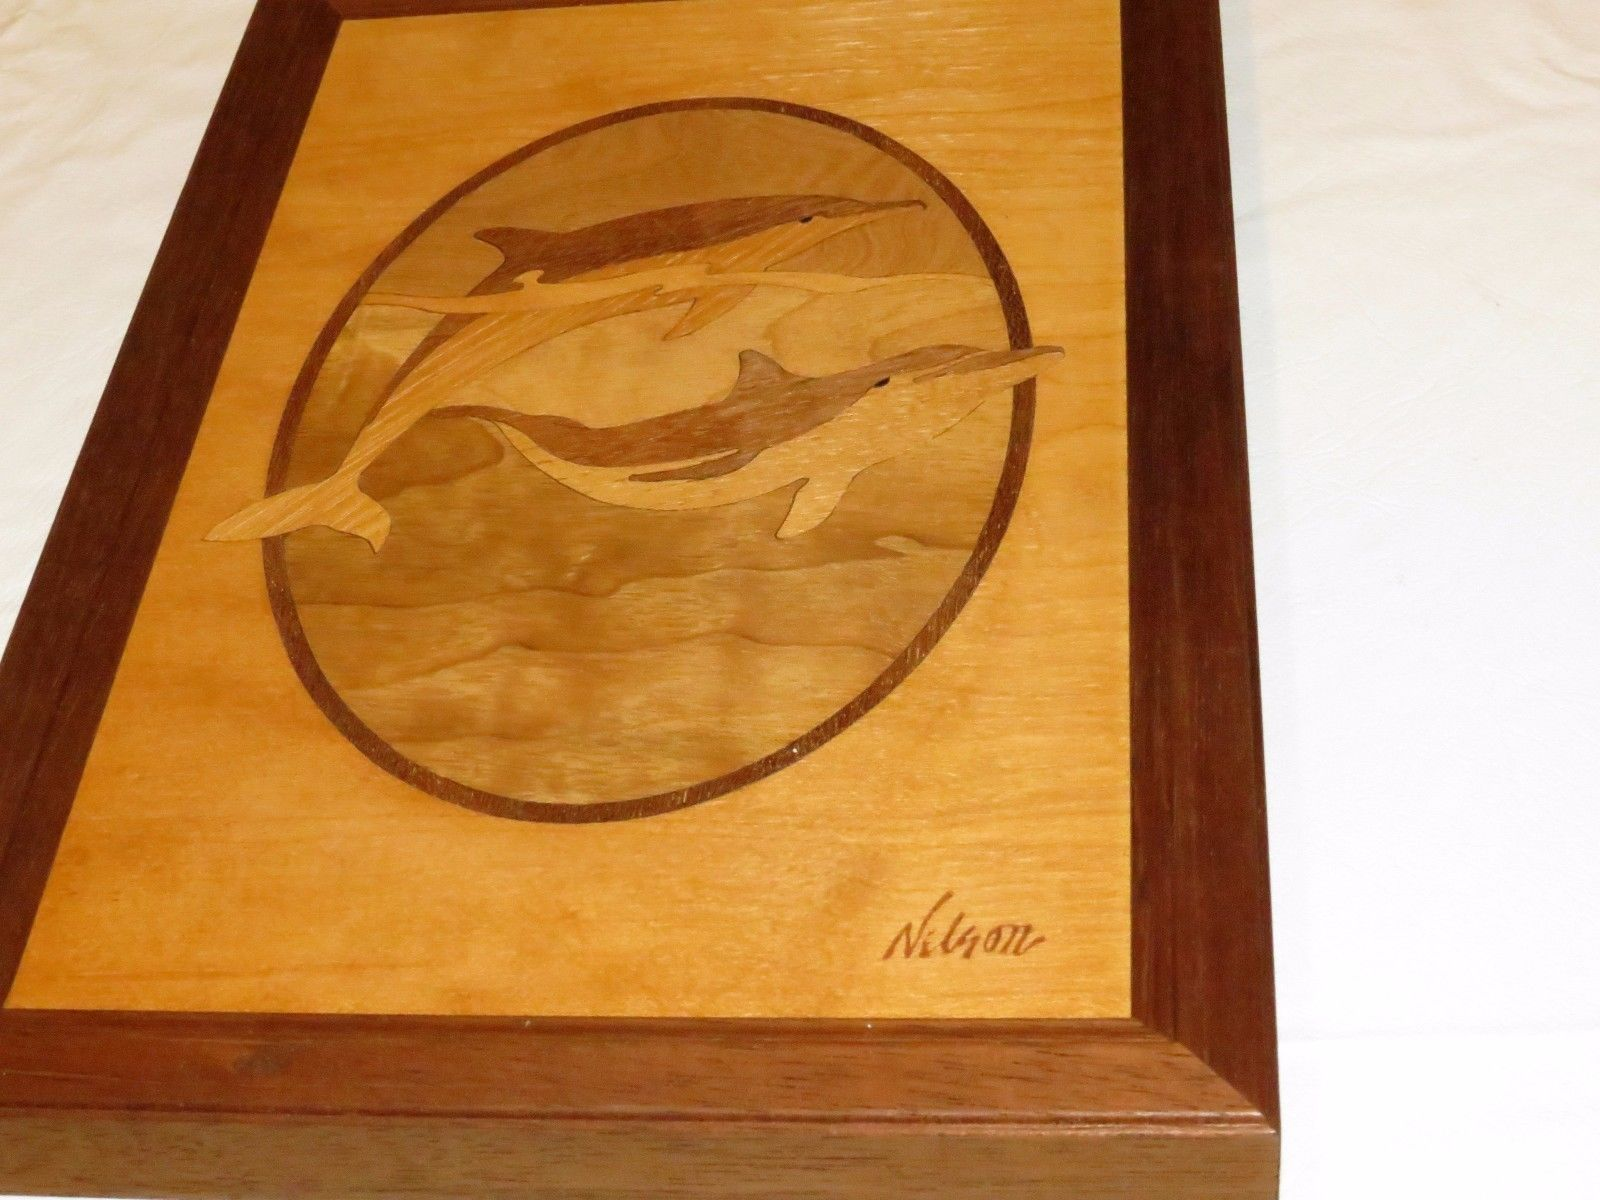 Dolphin Wood Inlays : Rare wood hudson river inlay hardwood nelson dolphins